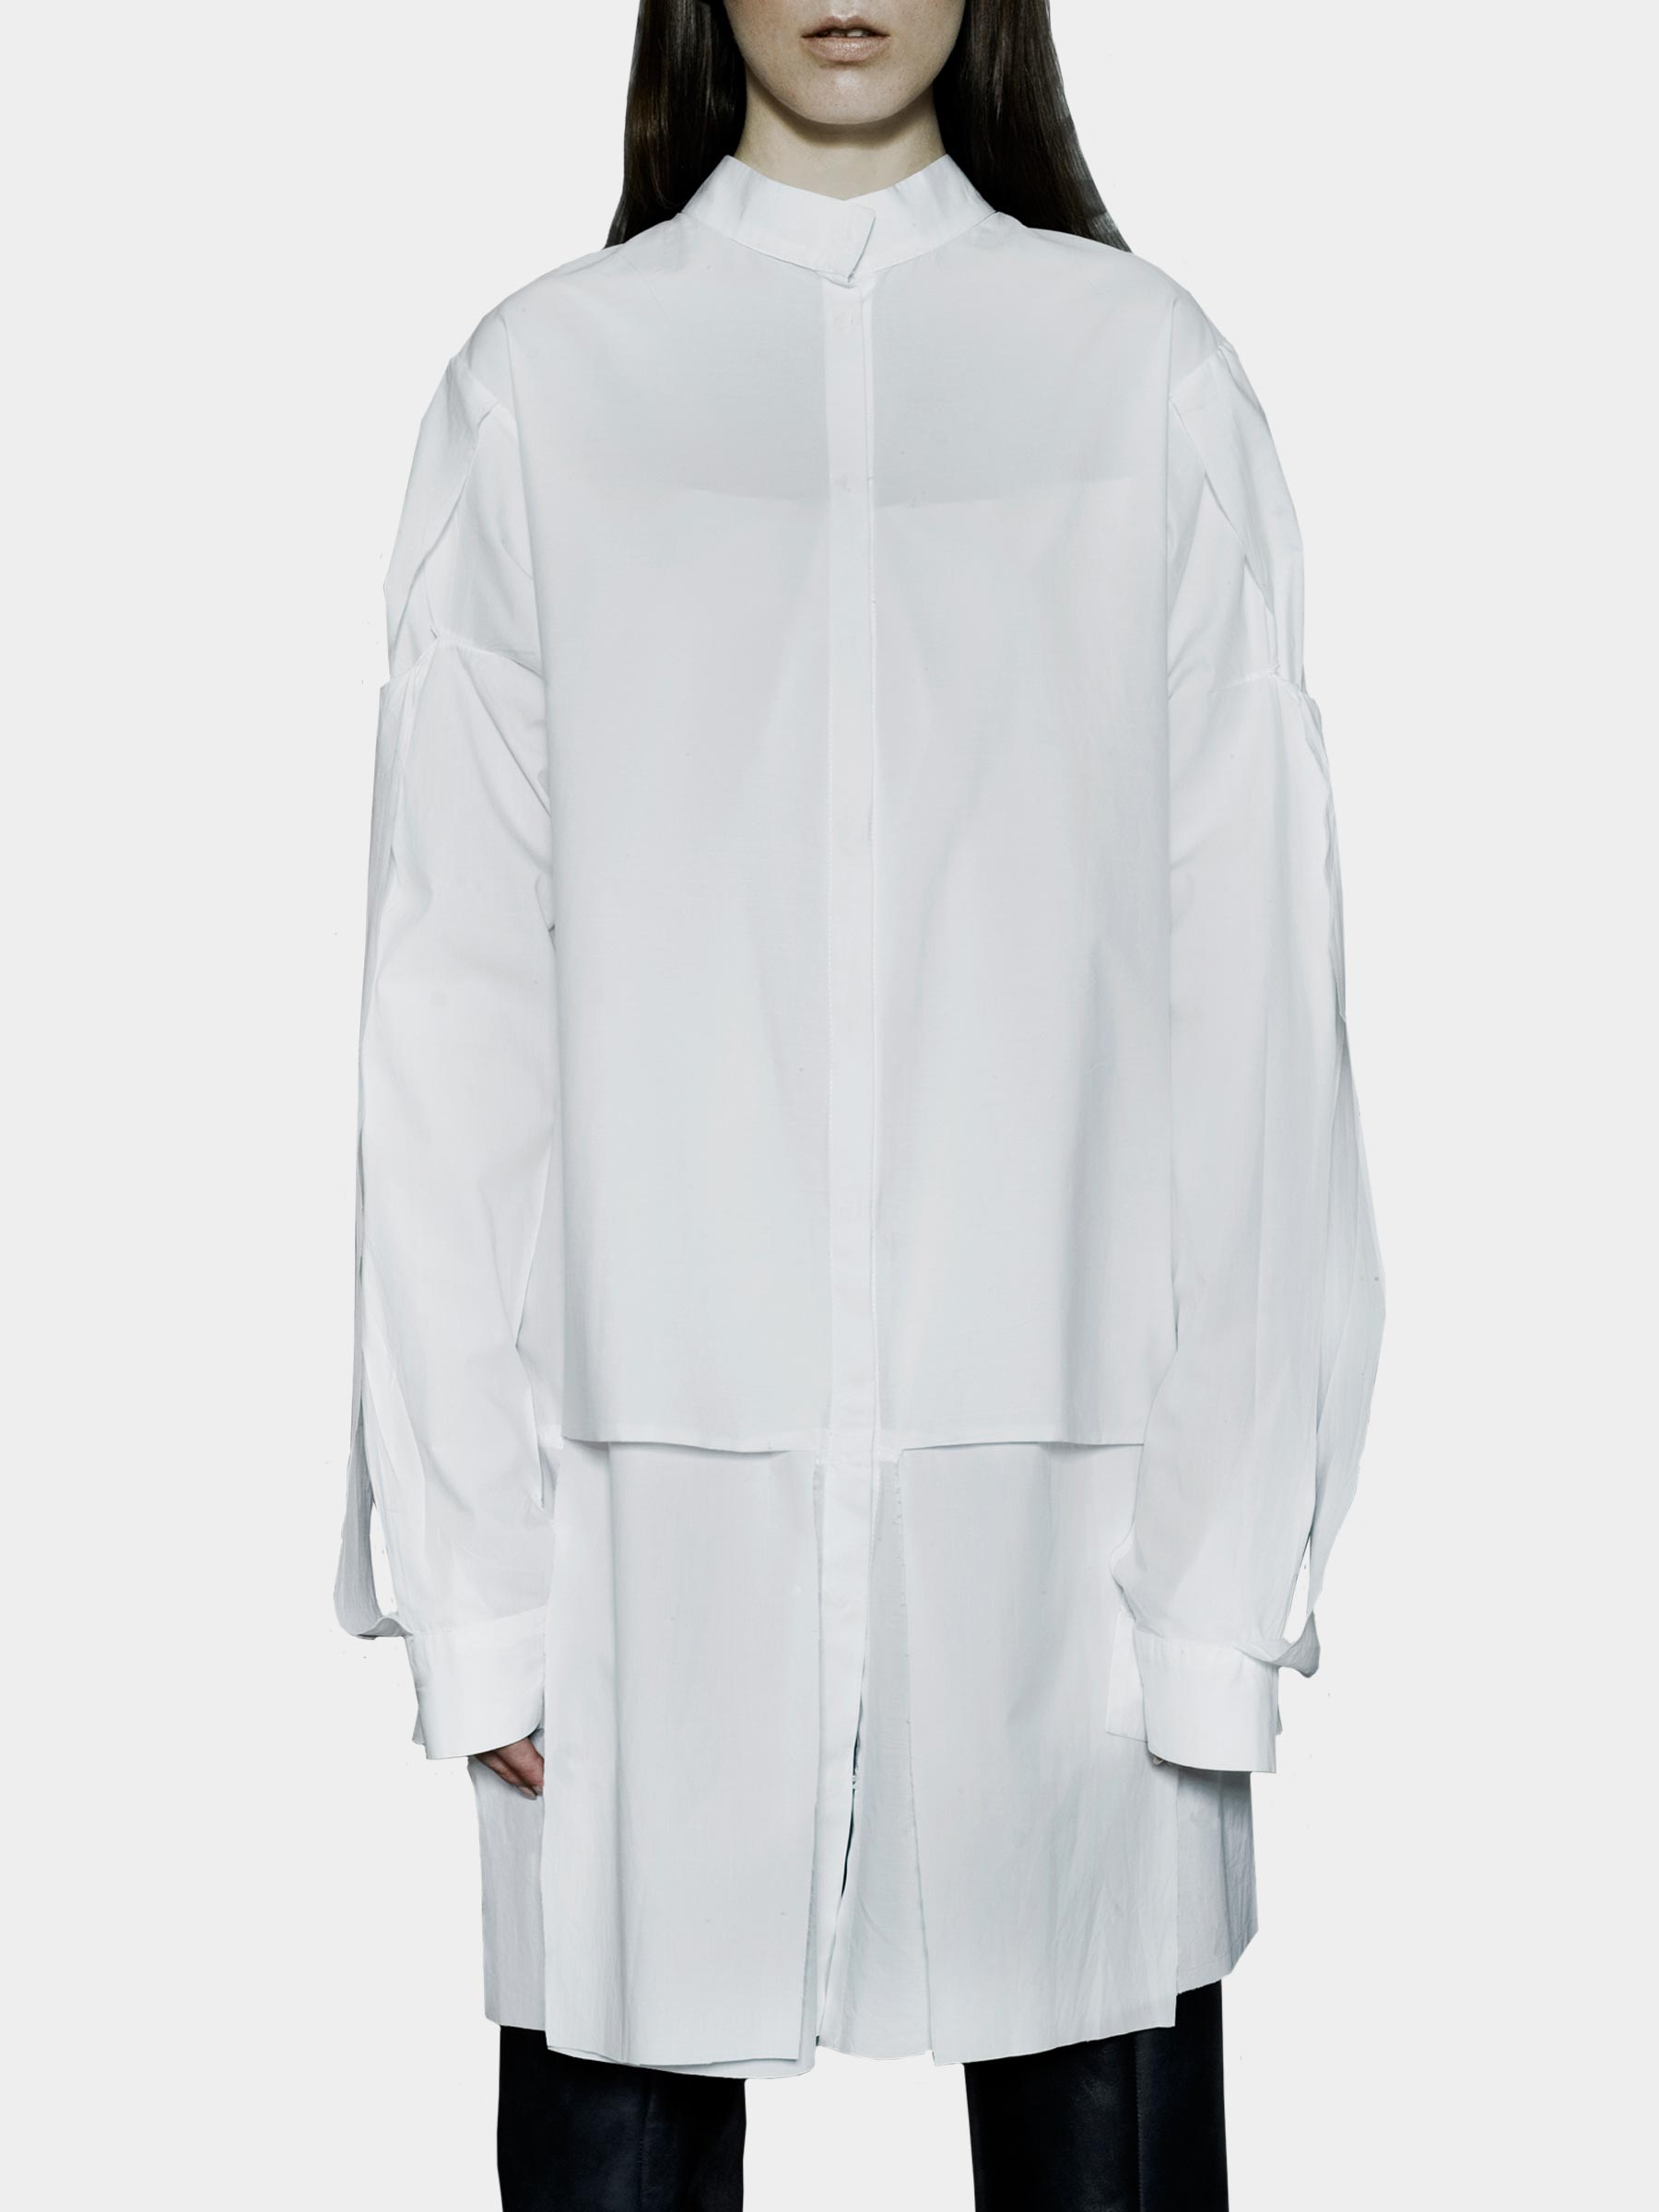 White Shirt/Tunic - Joanna Organisciak - Cotton - utopiast.com